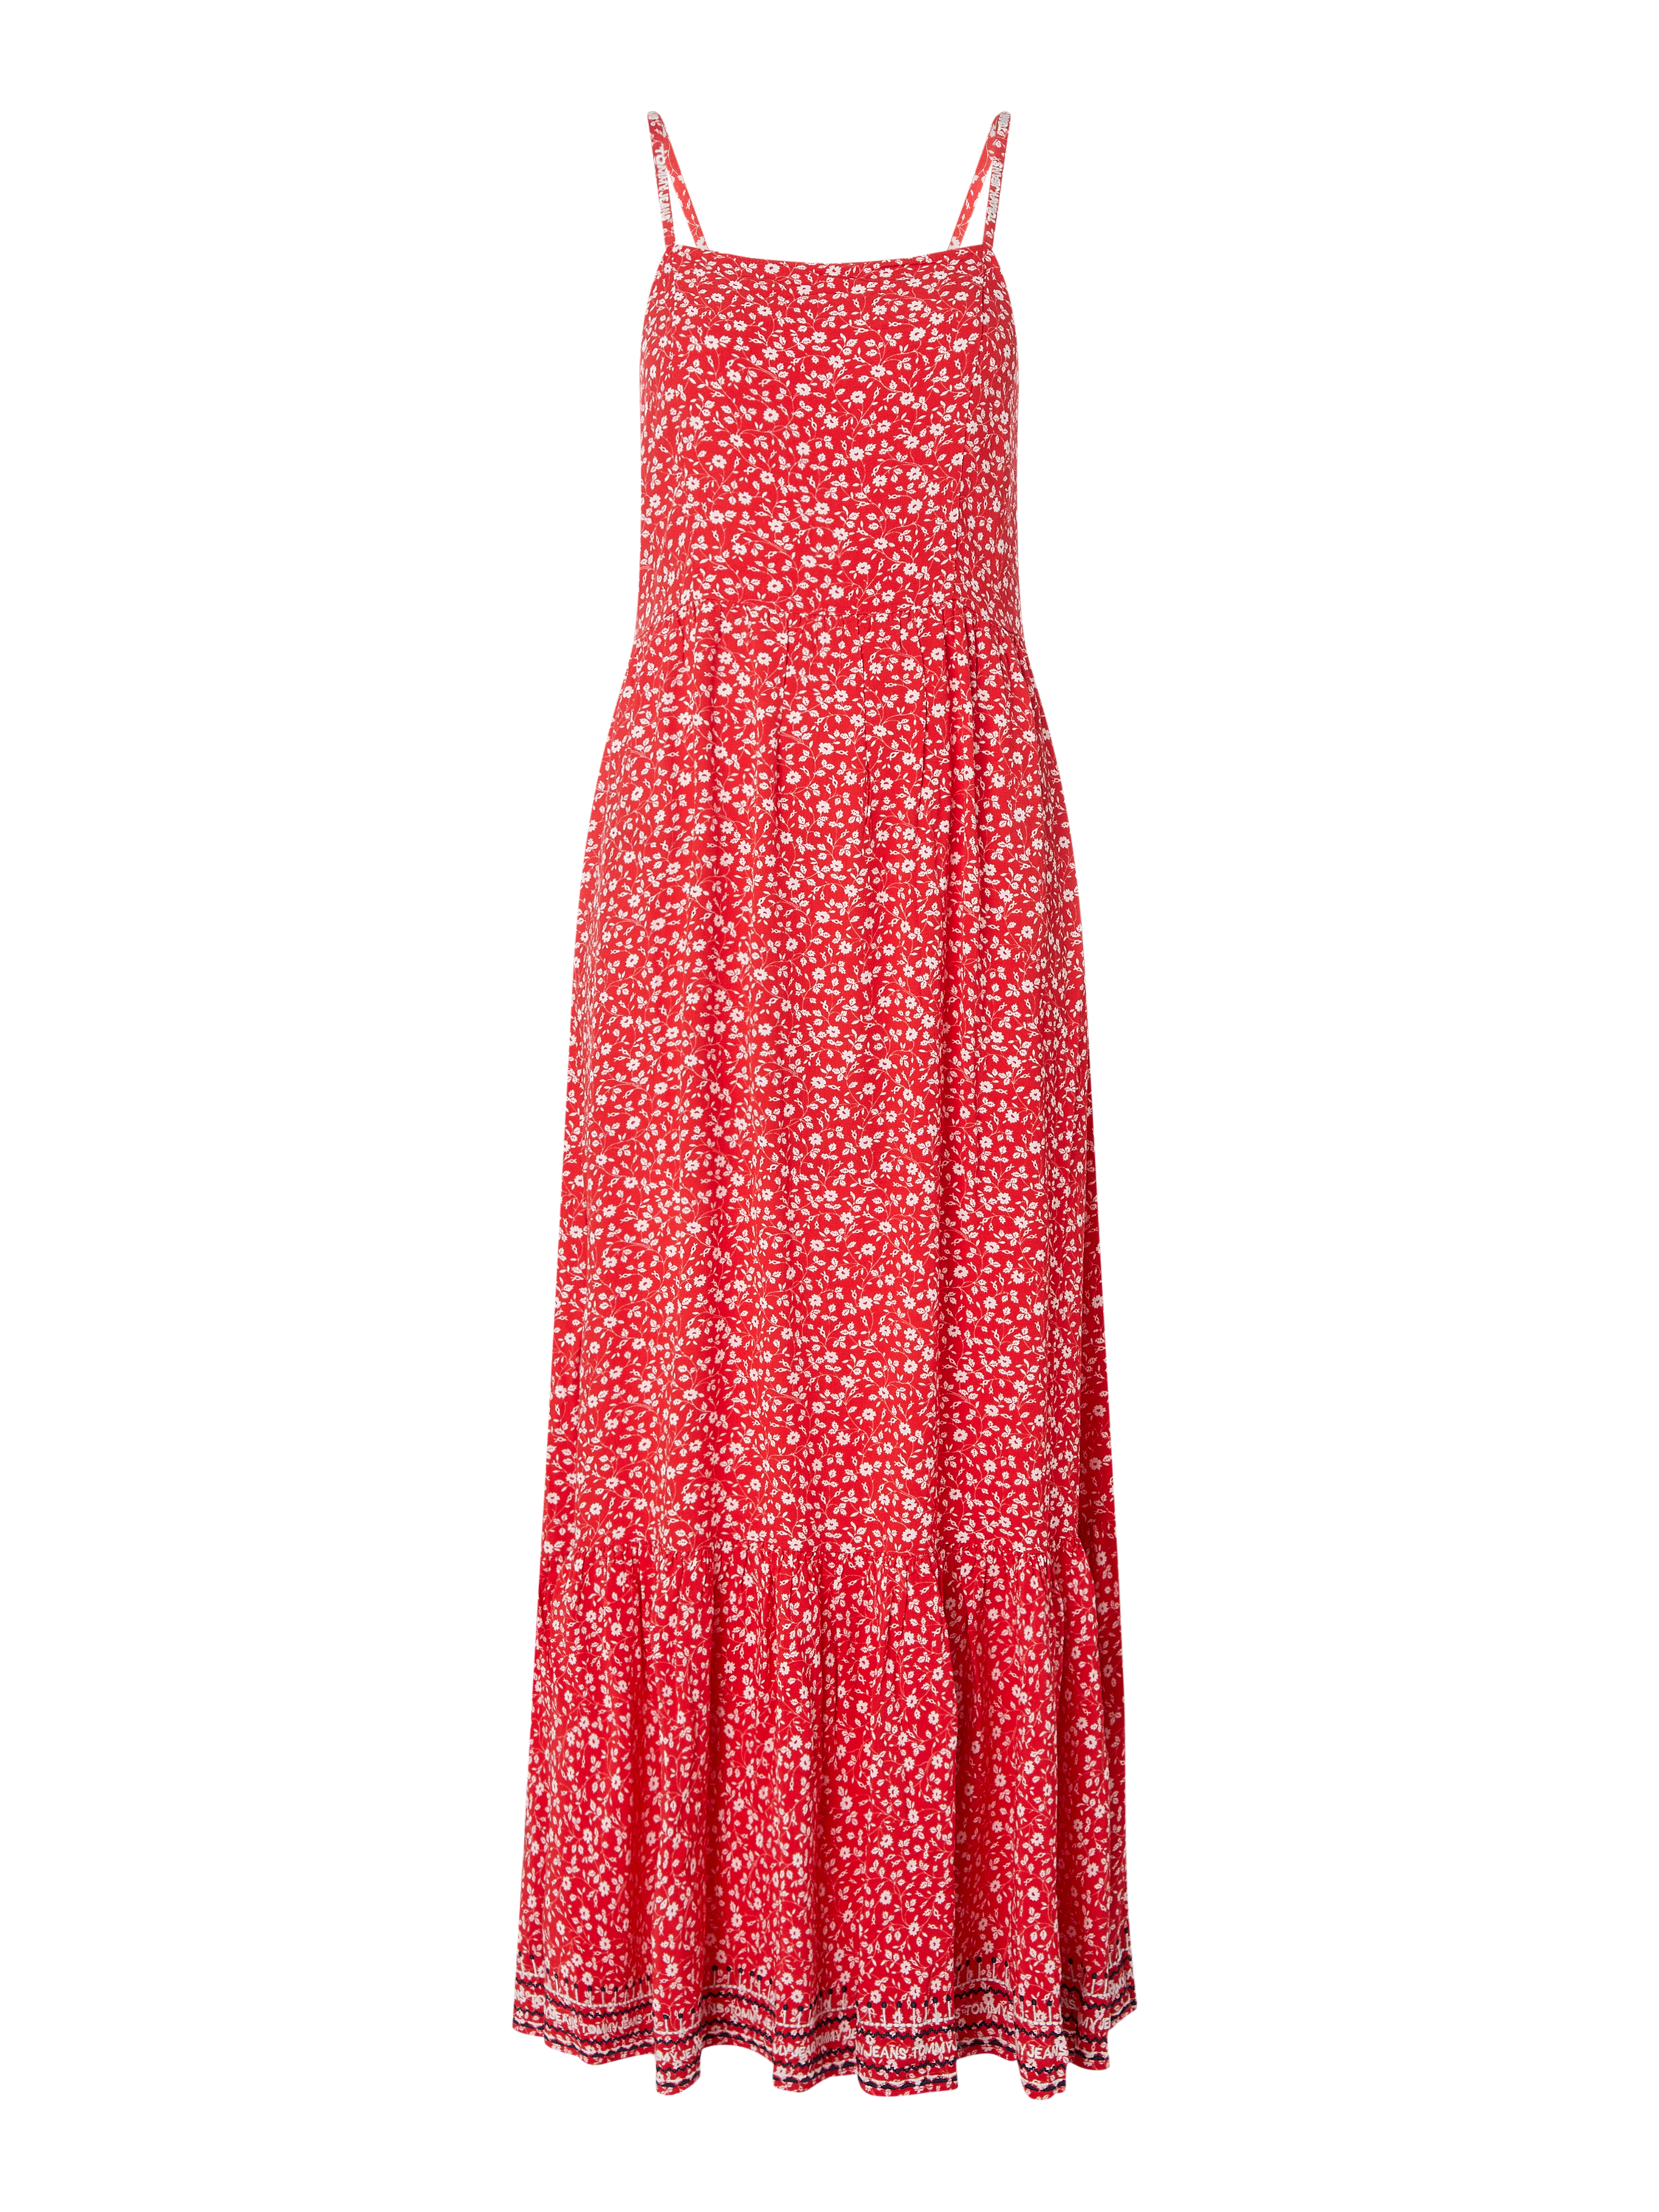 Tommy Jeans – Maxikleid mit Allover Muster – Rot